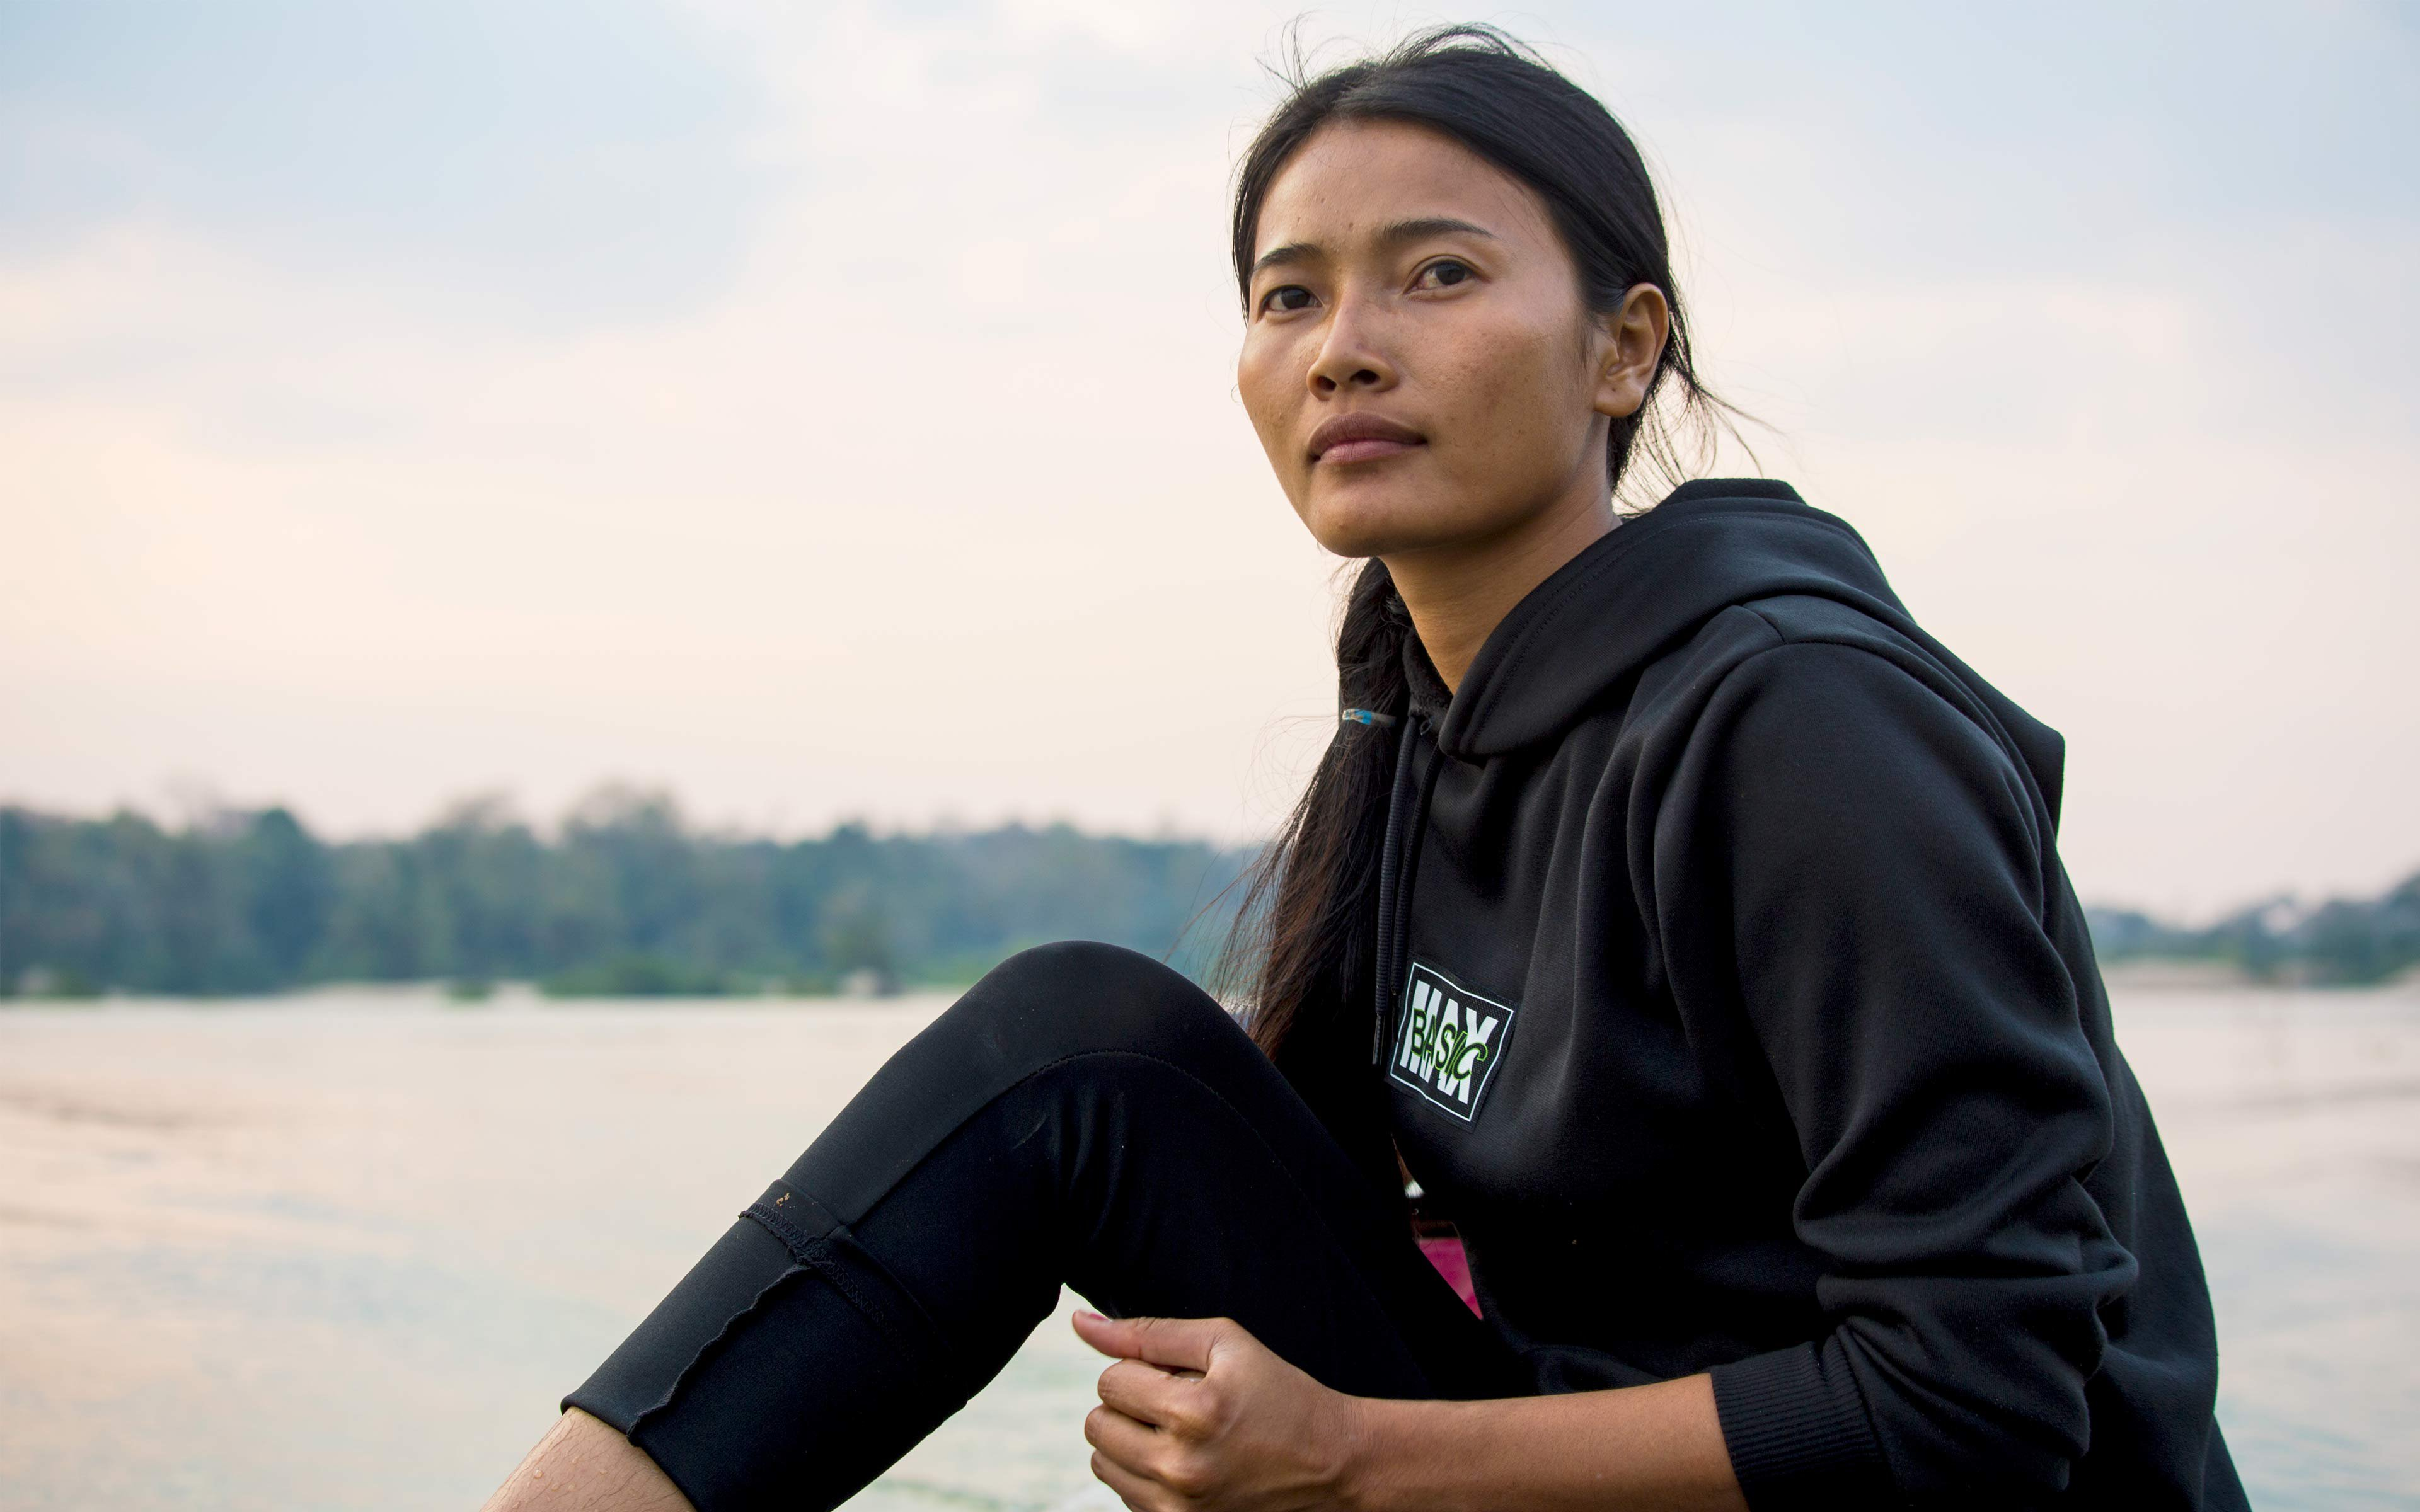 Hong Rany, 26, was elected leader of the Community Fishery committee in her village, Ksach Leav, in 2018. Male leaders in the village complained, claiming she was inexperienced and could not enforce fishing regulations because she is a woman. She worked with Oxfam's partner Northeast Rural Development to get the training she needs to lead the committee, and has proven to her critics she can do the job.